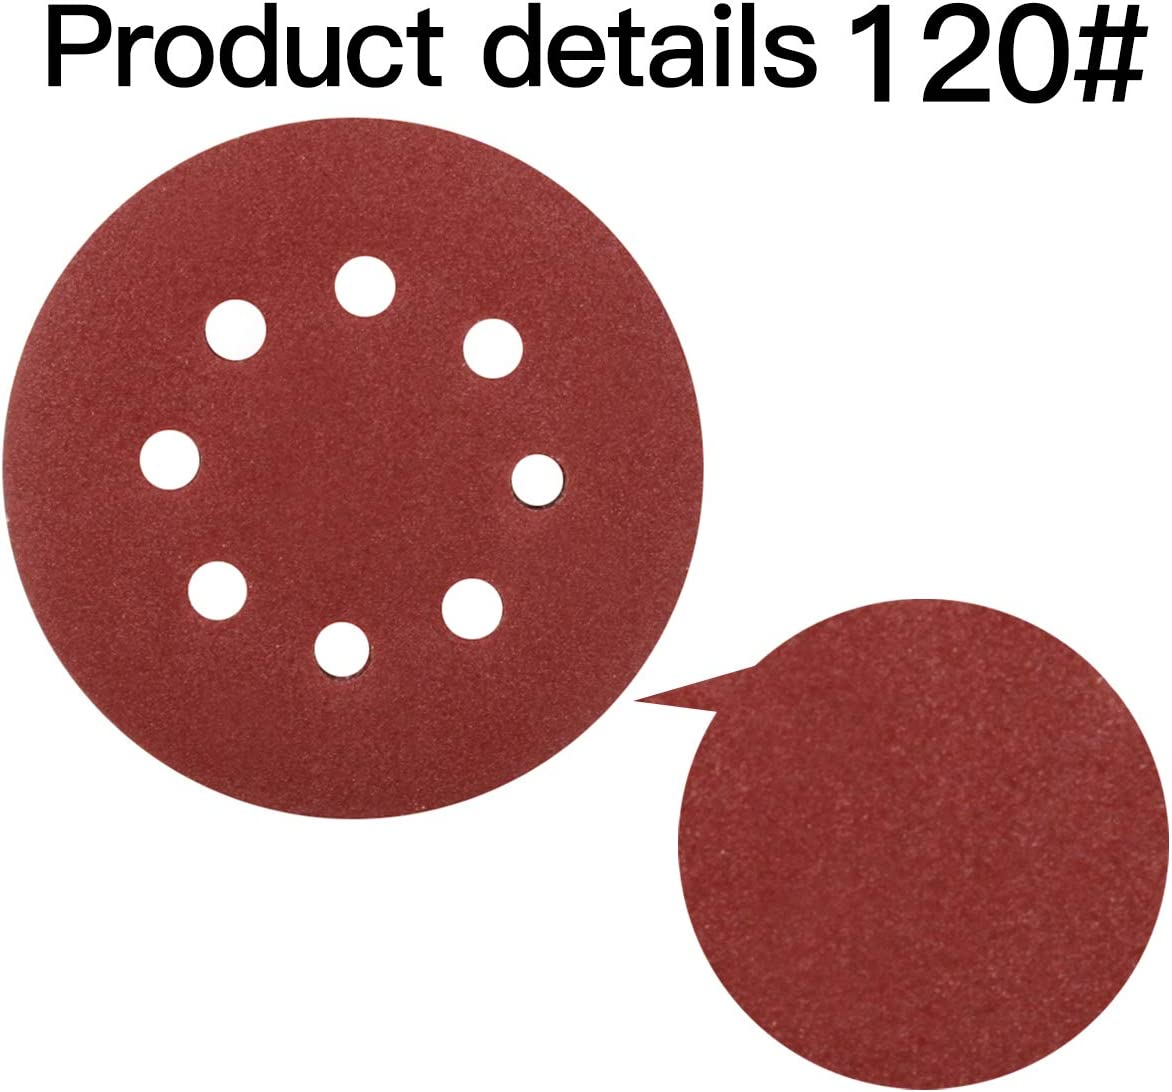 Deefoml 40 Pcs Sanding Discs 60# 80# 120# 240# Grit 5 inches 8-Holes Hook and Loop Sander Discs Pad Assortment for Random Orbital Sander